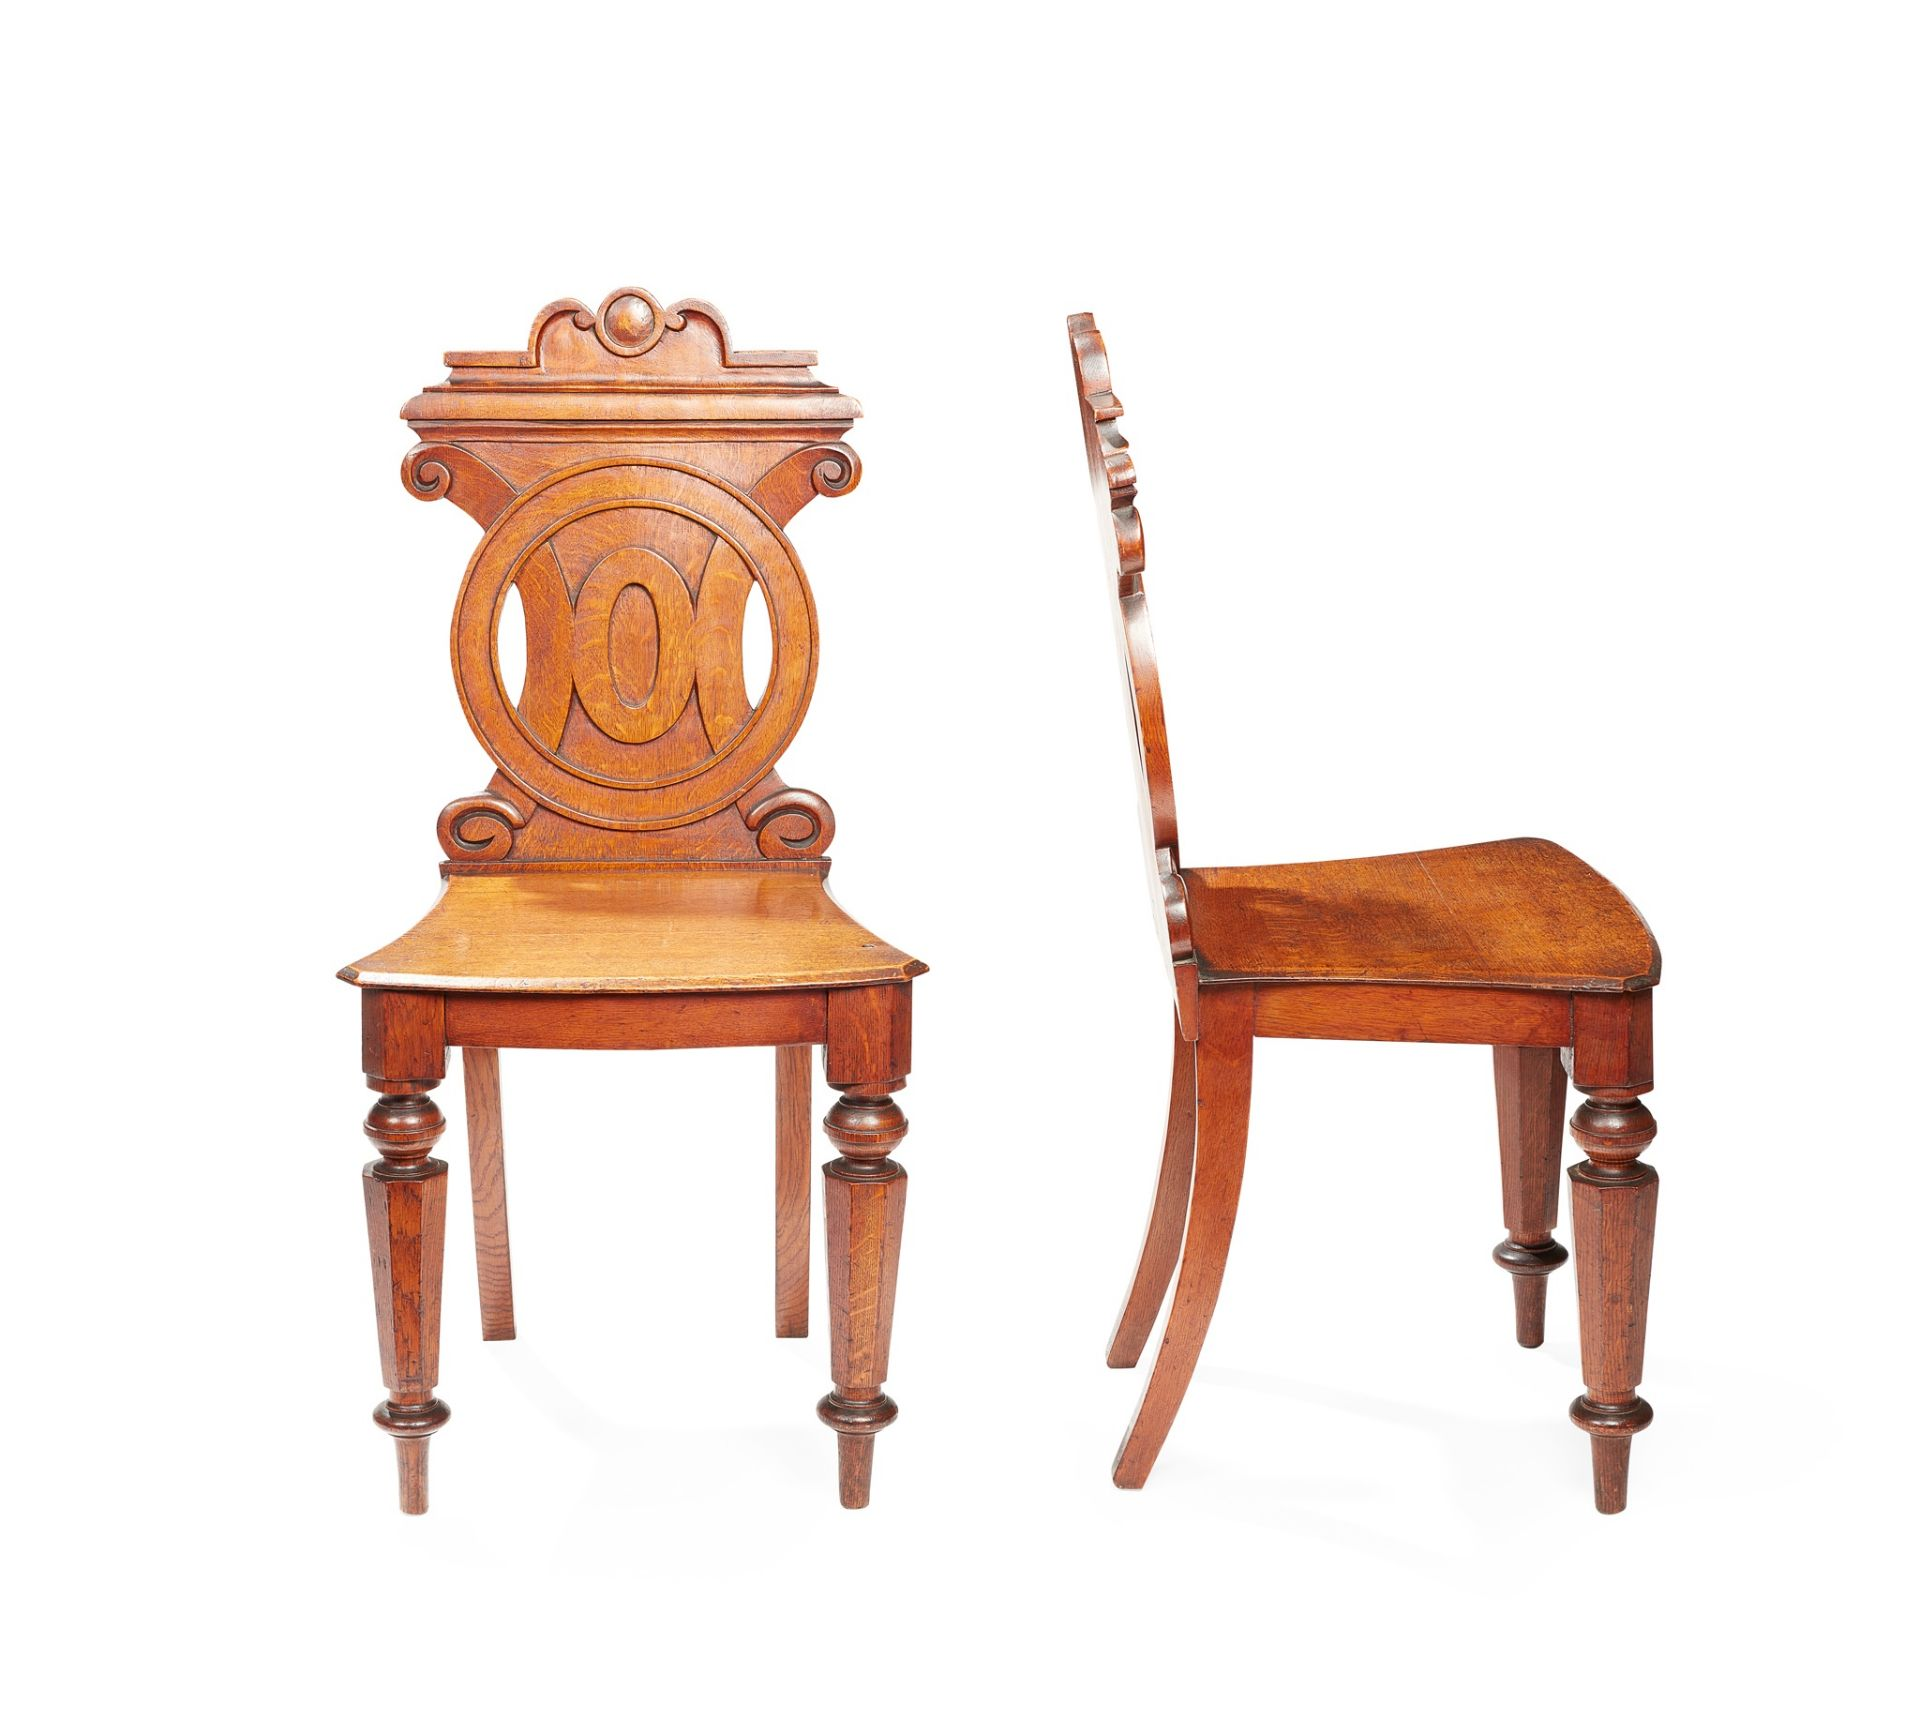 A PAIR OF VICTORIAN HALL CHAIRS MID-19TH CENTURY - Image 2 of 2